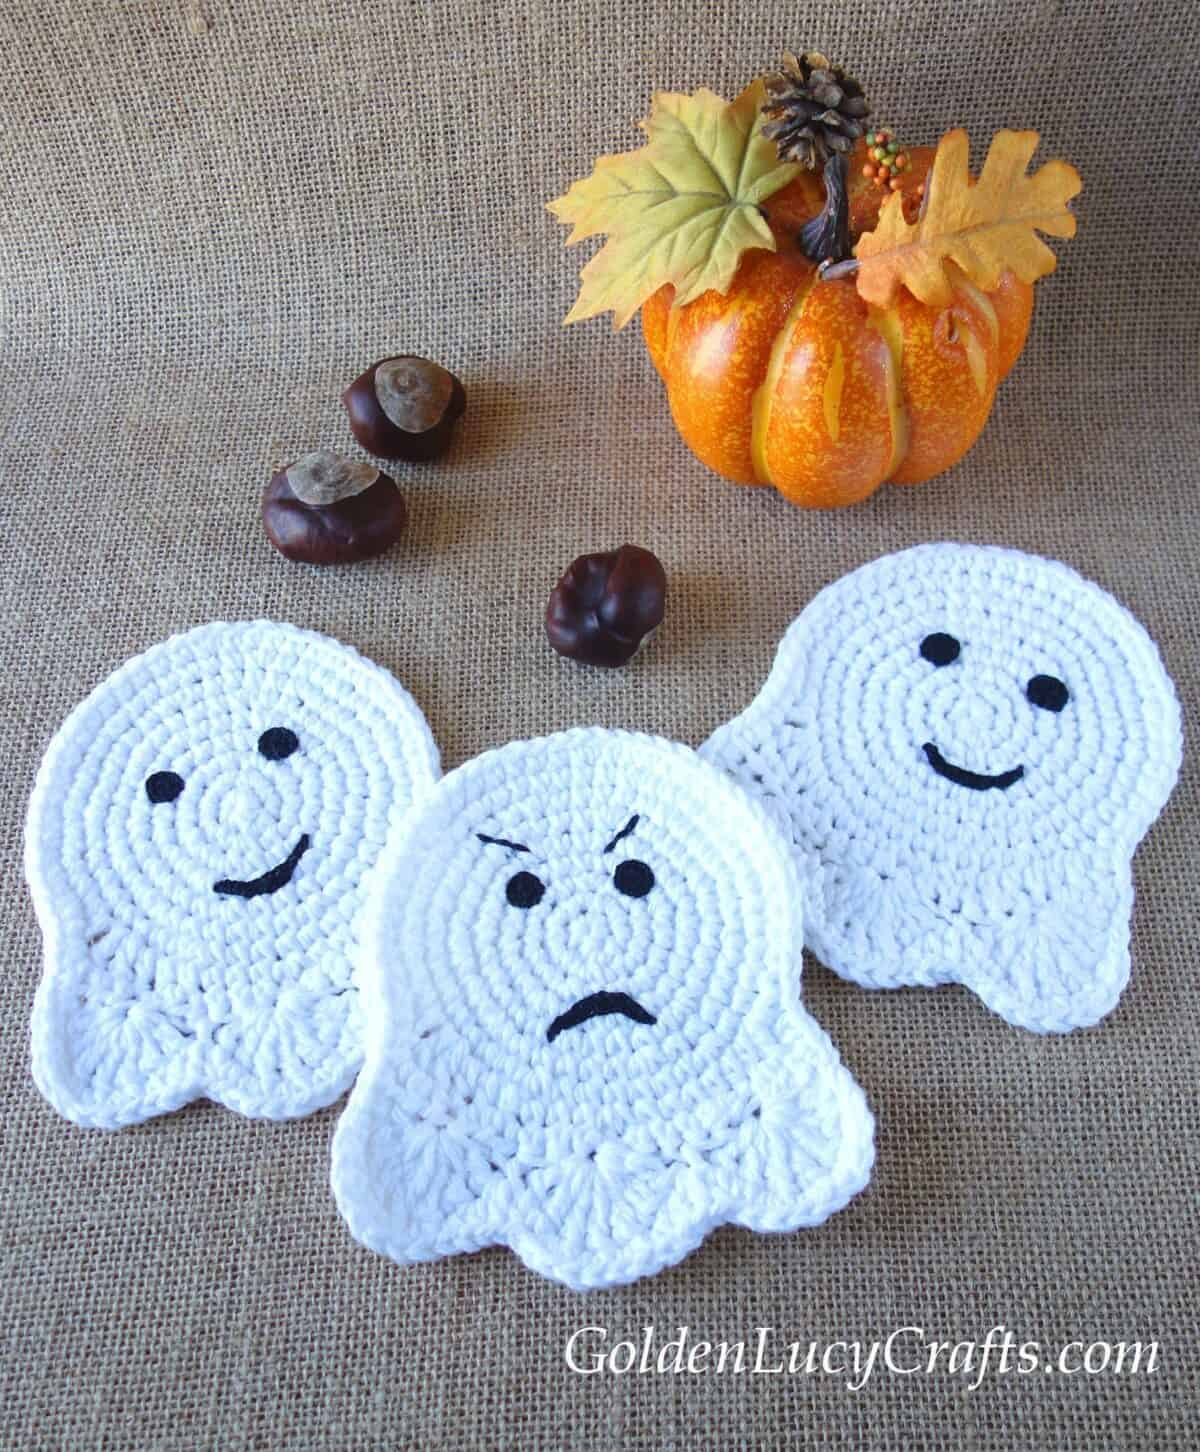 Three crocheted ghost coasters, pumpkin and three chestnuts.